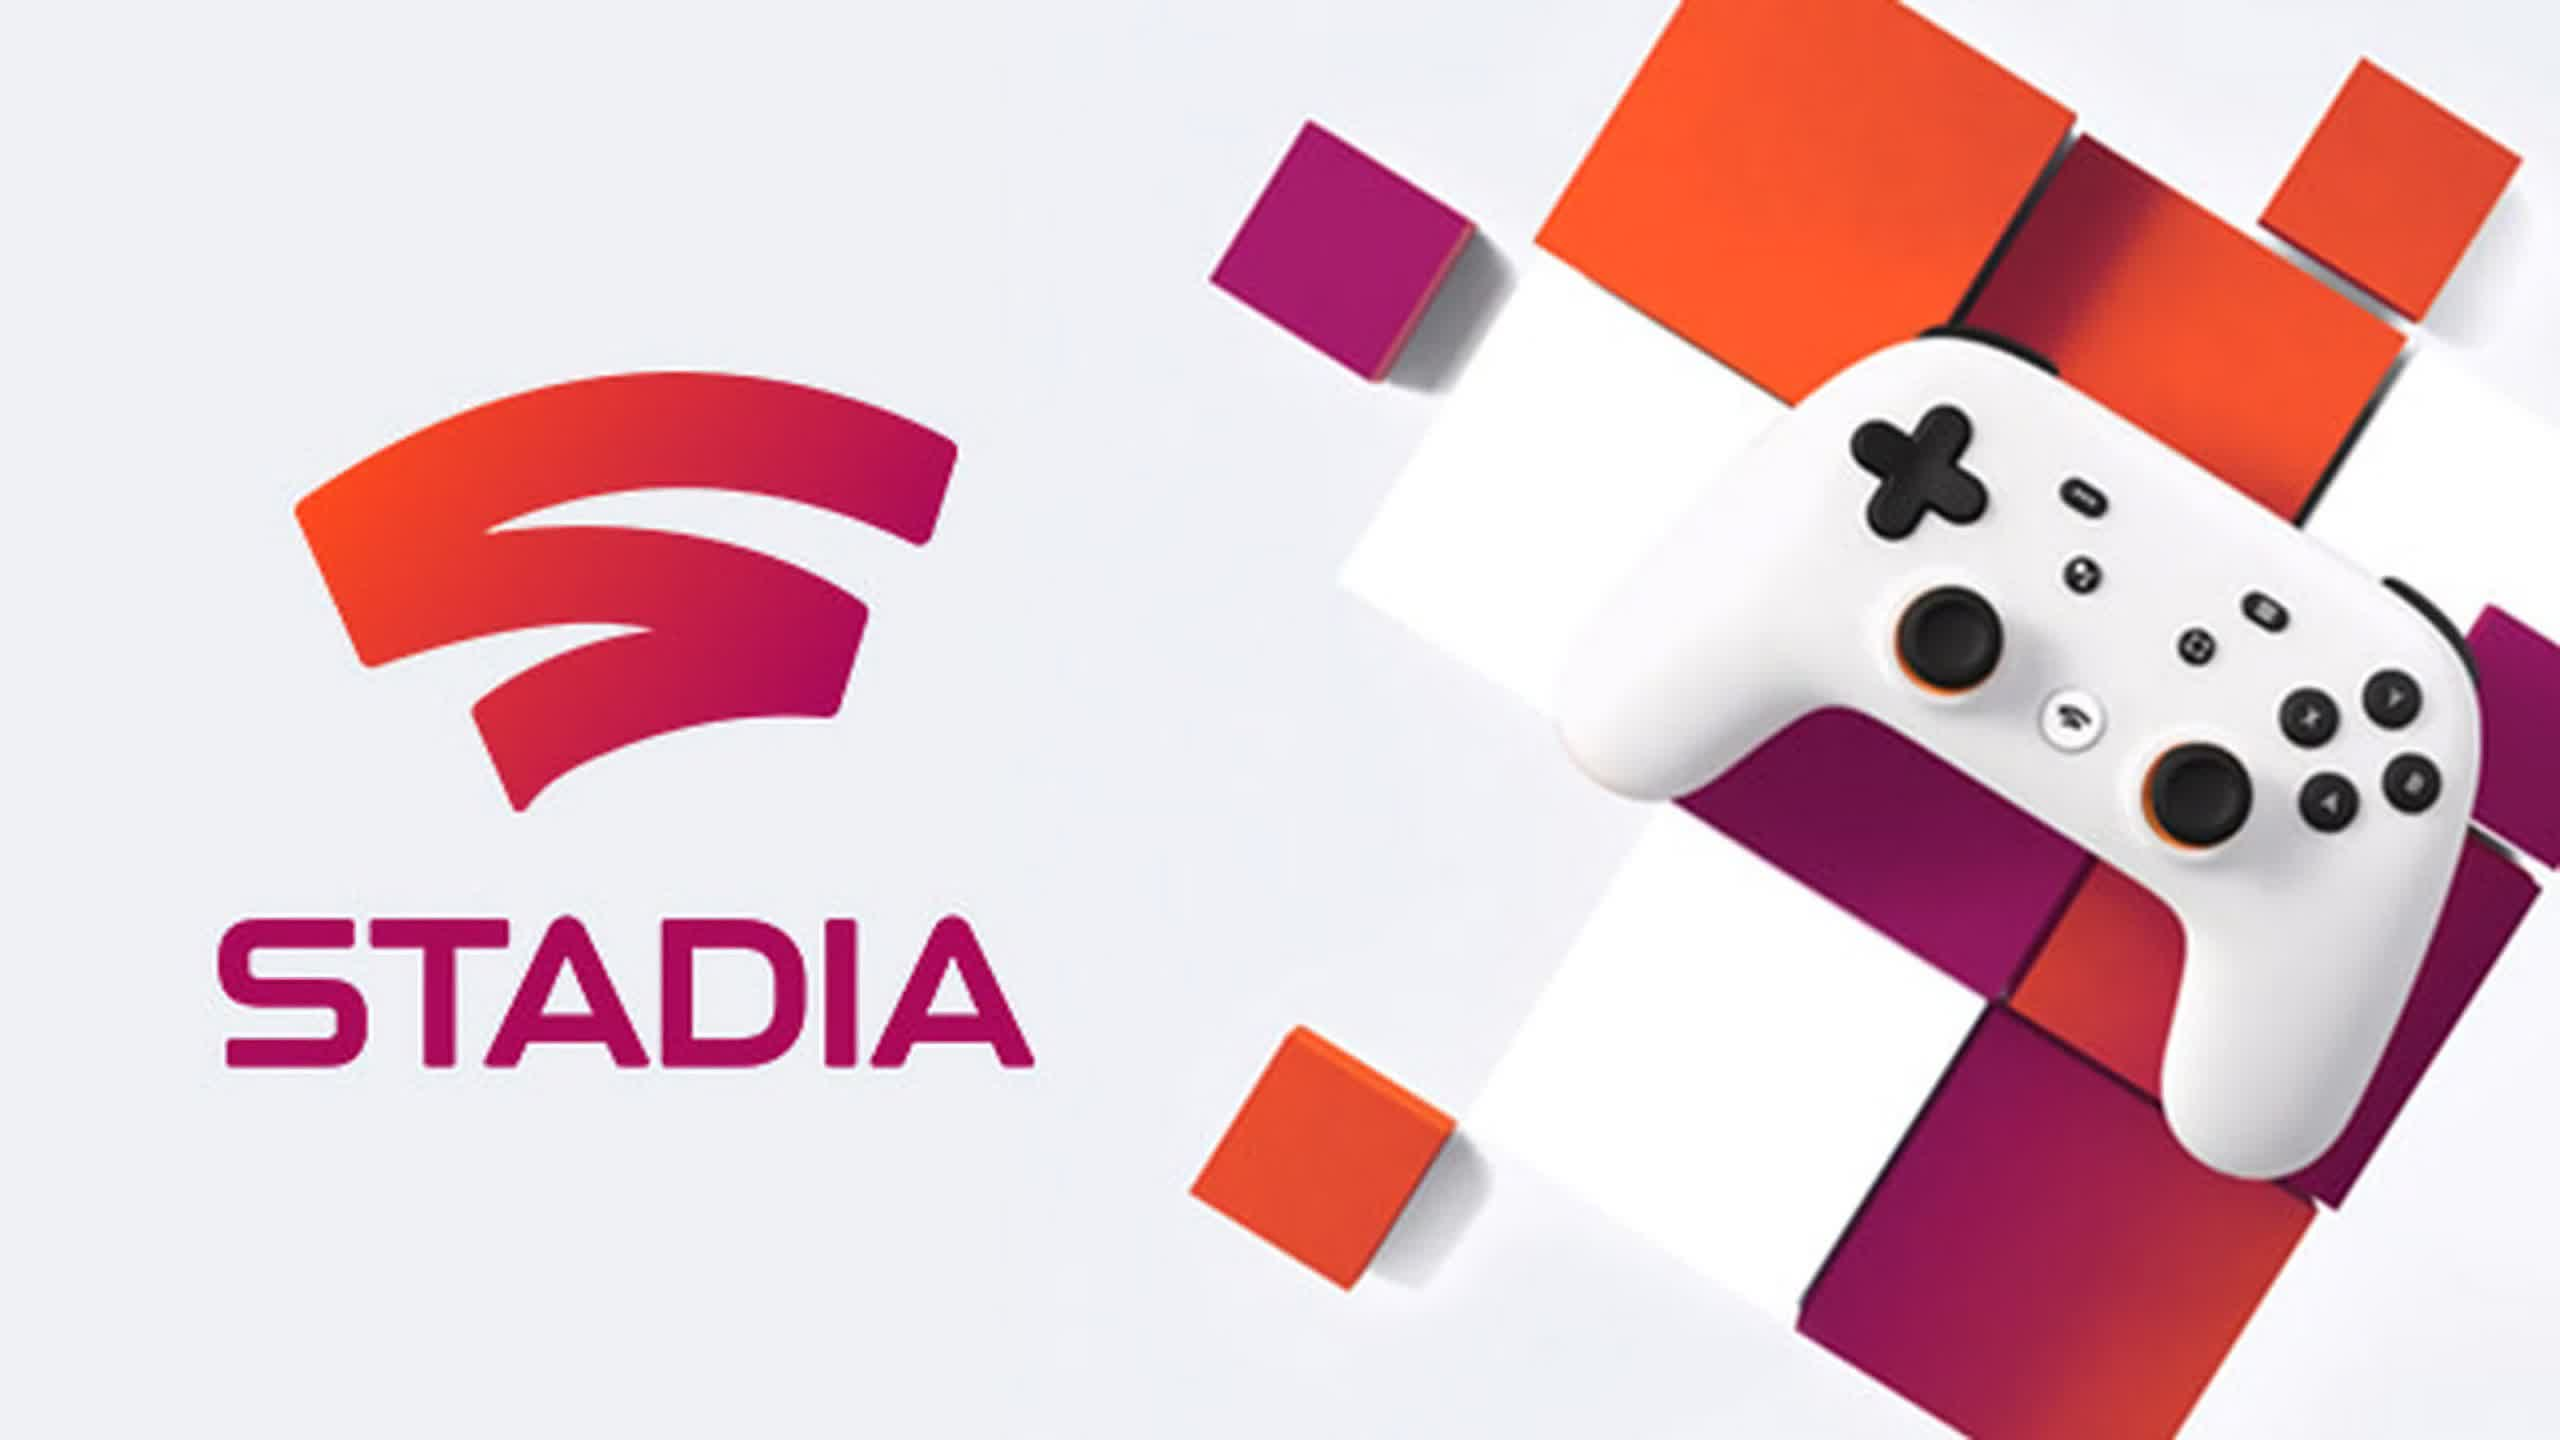 Google Stadia gets 'direct' to YouTube livestreaming this week